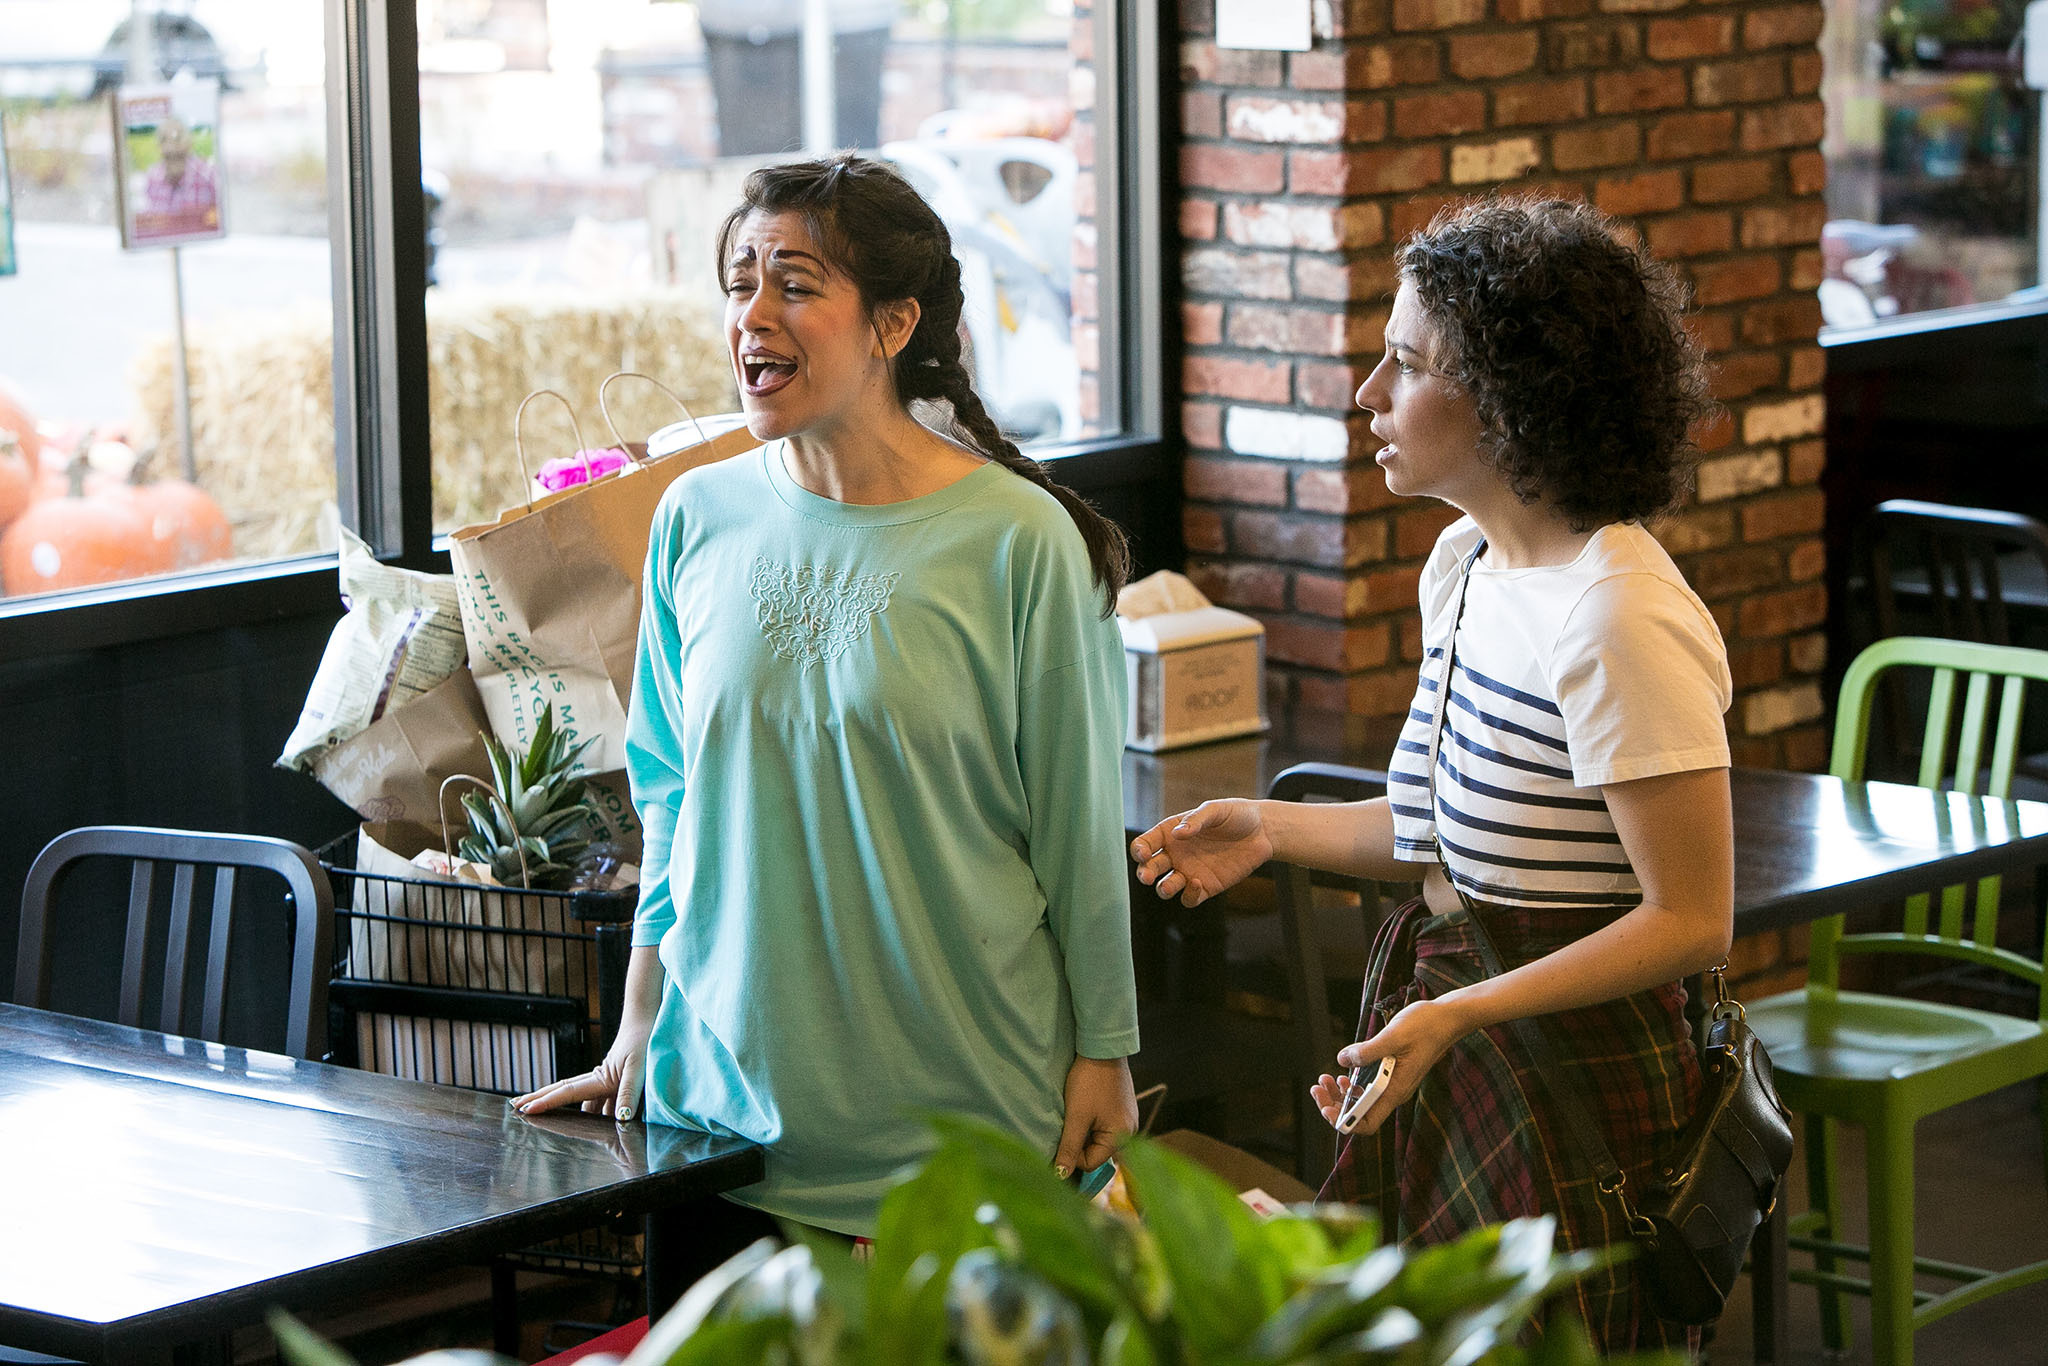 BROAD CITY PRODUCTION PHOTOS